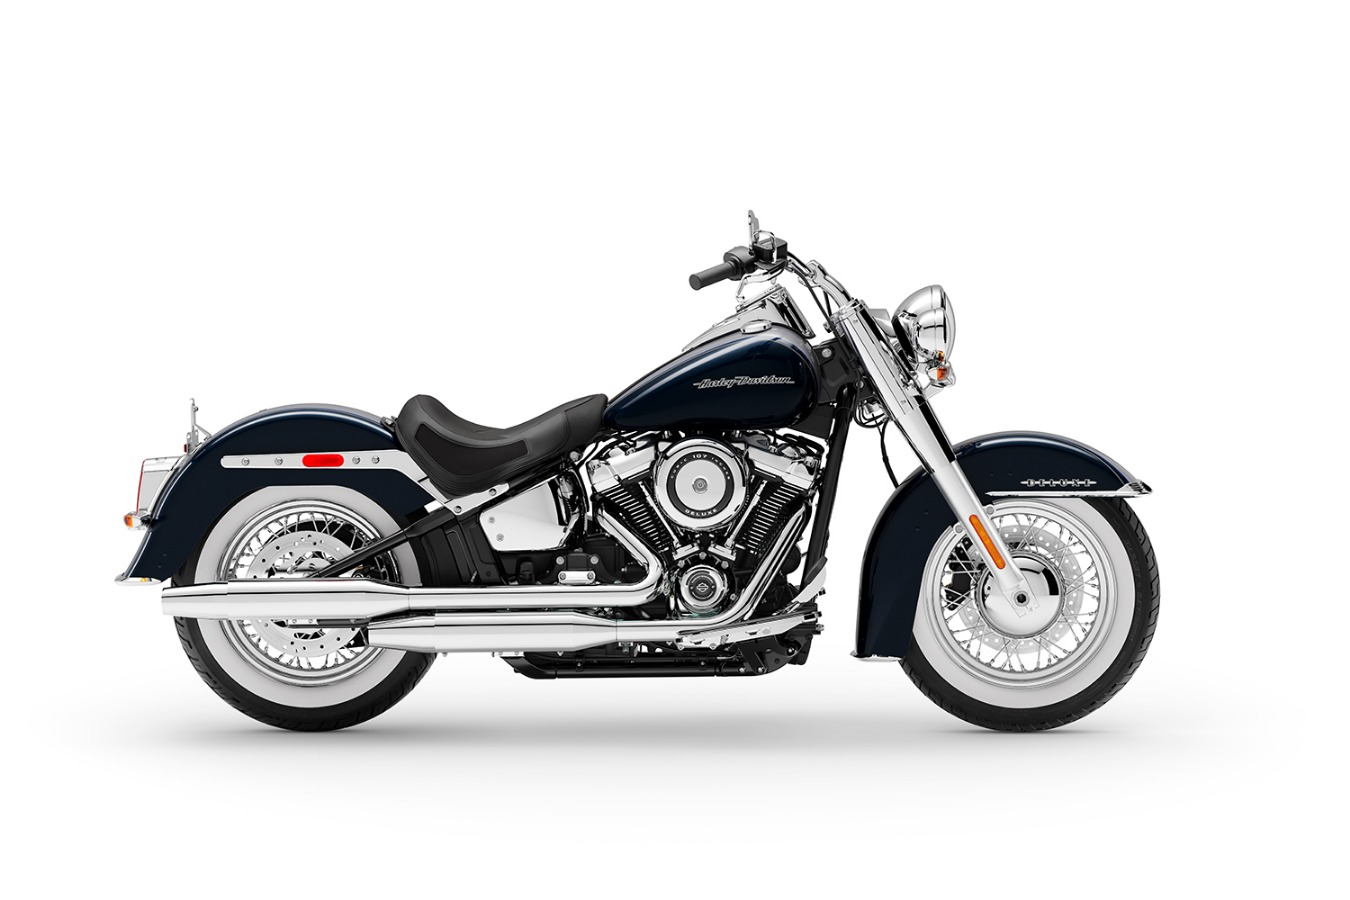 harley-davidson ravenna - SOFTAIL DELUXE 2019 RAWHIDE  SPECIAL PROMO